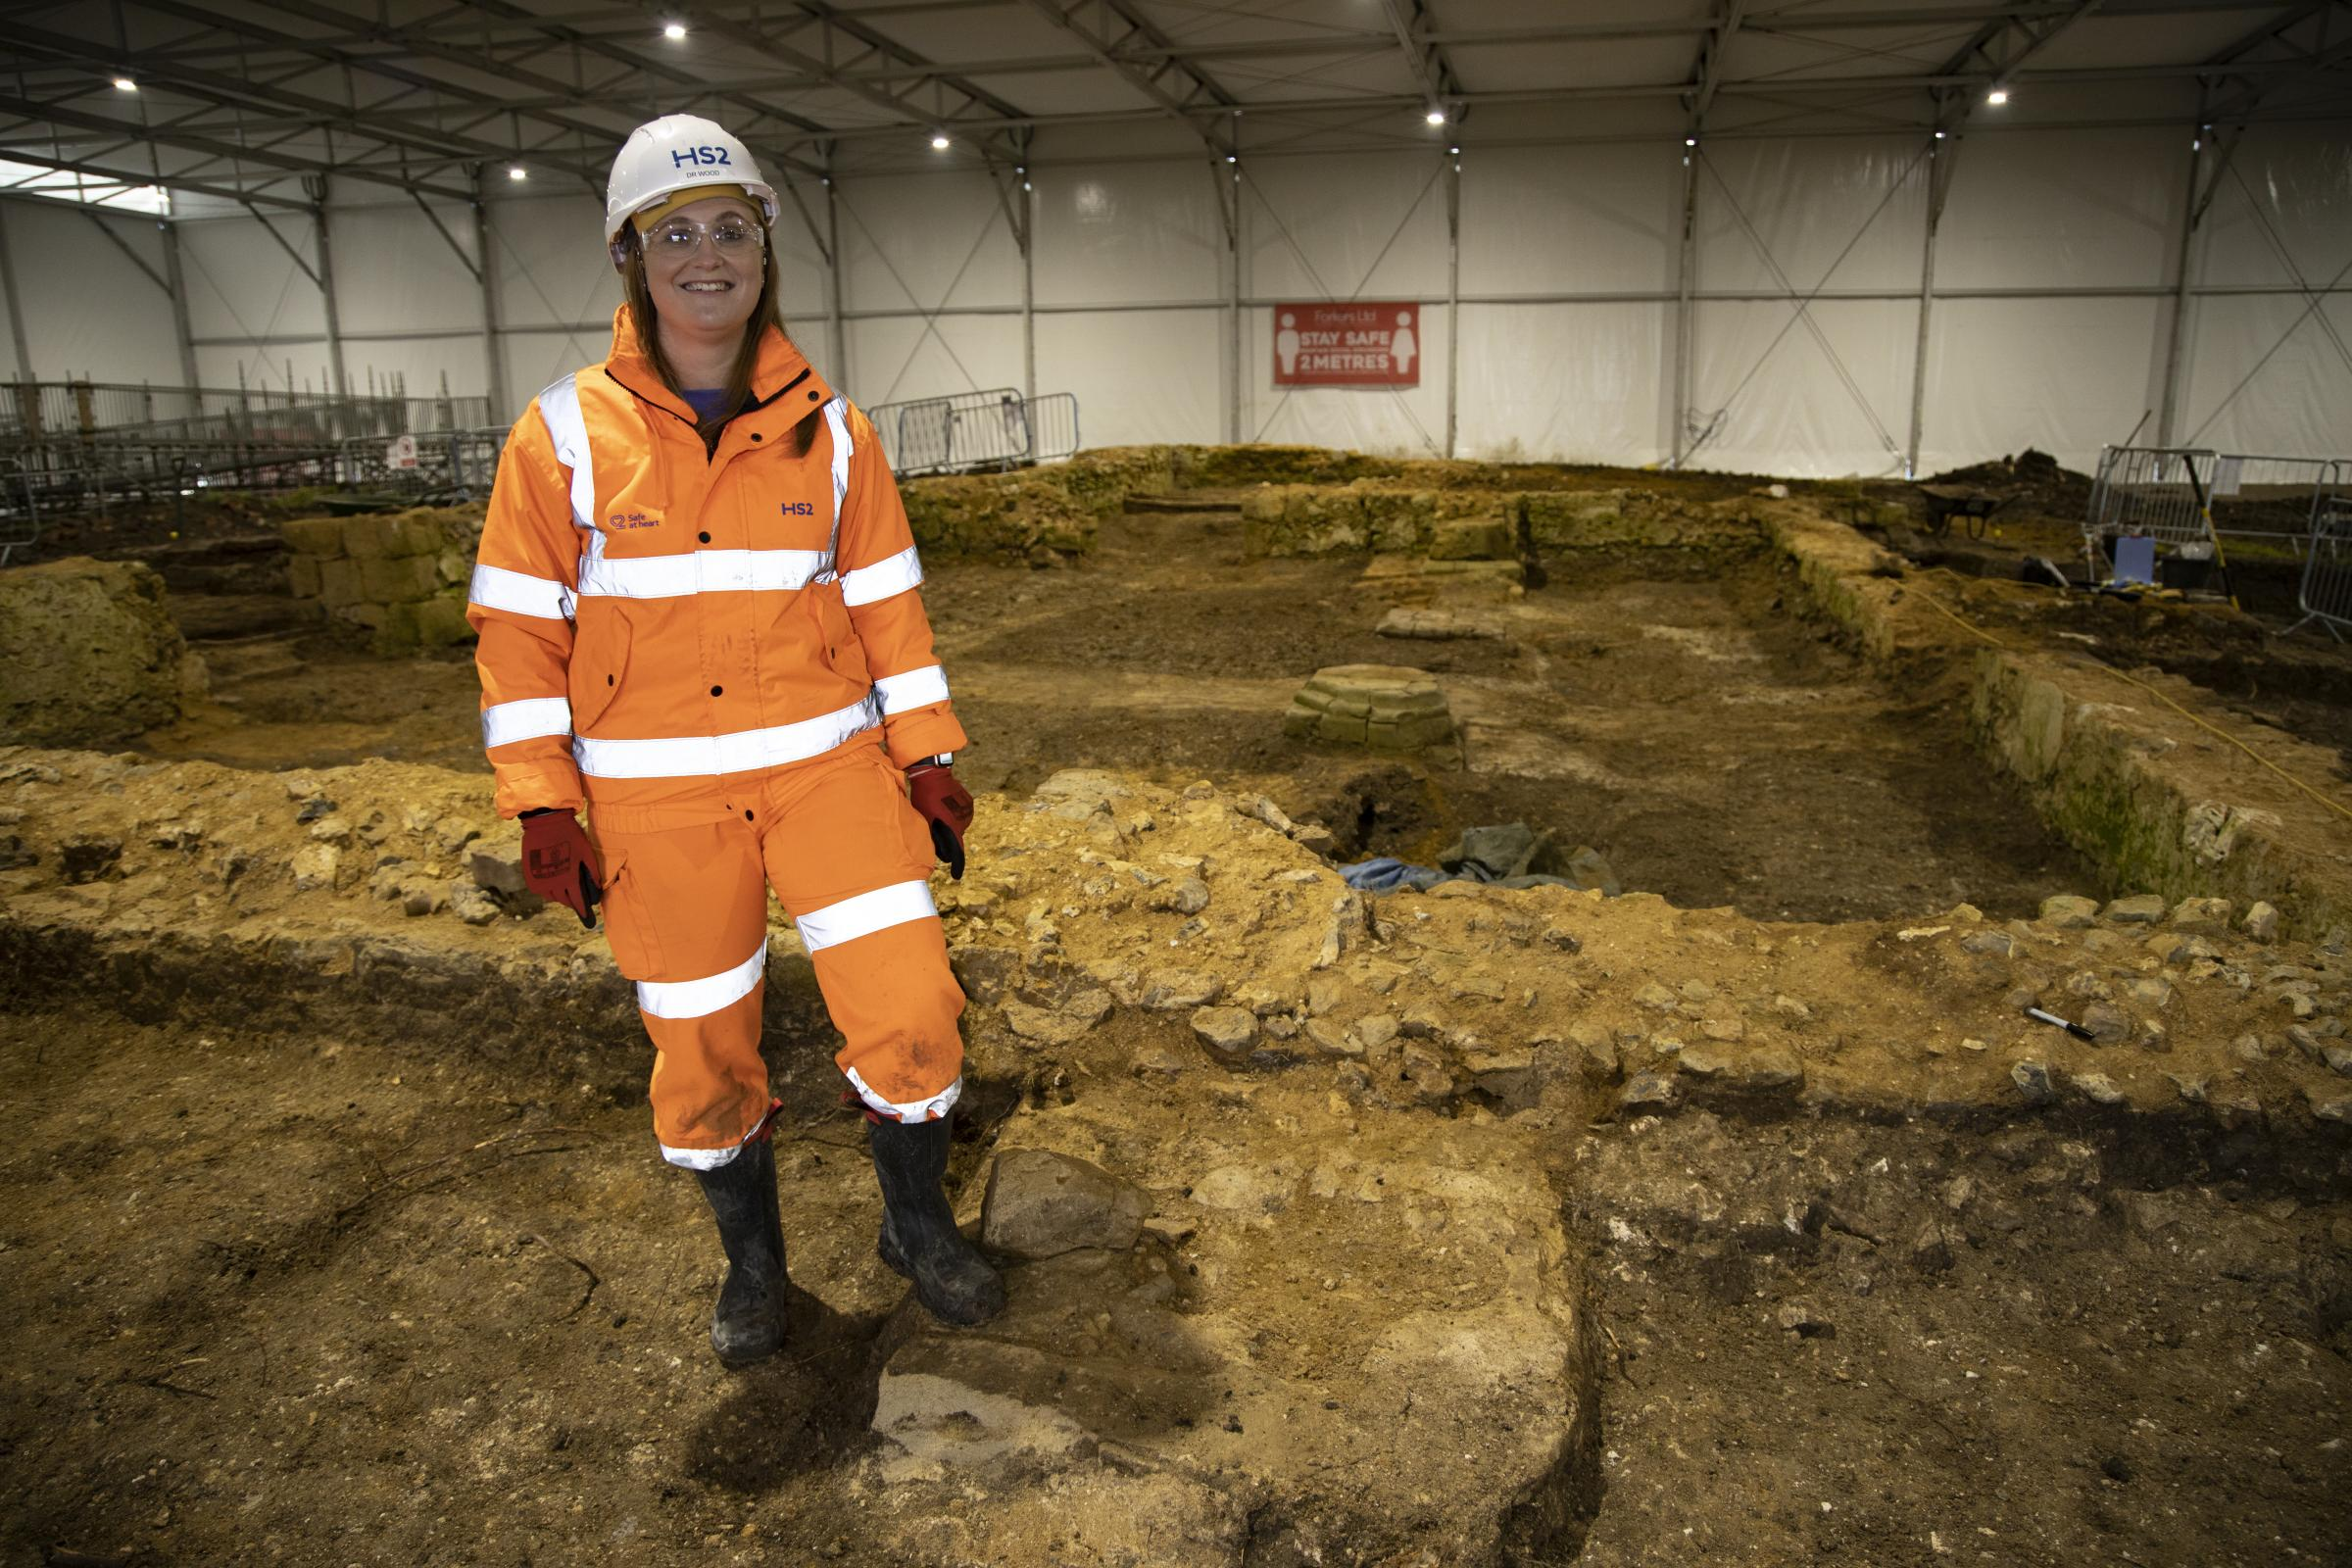 Dr. Rachel Wood, Project Archaeologist for Fusion JV